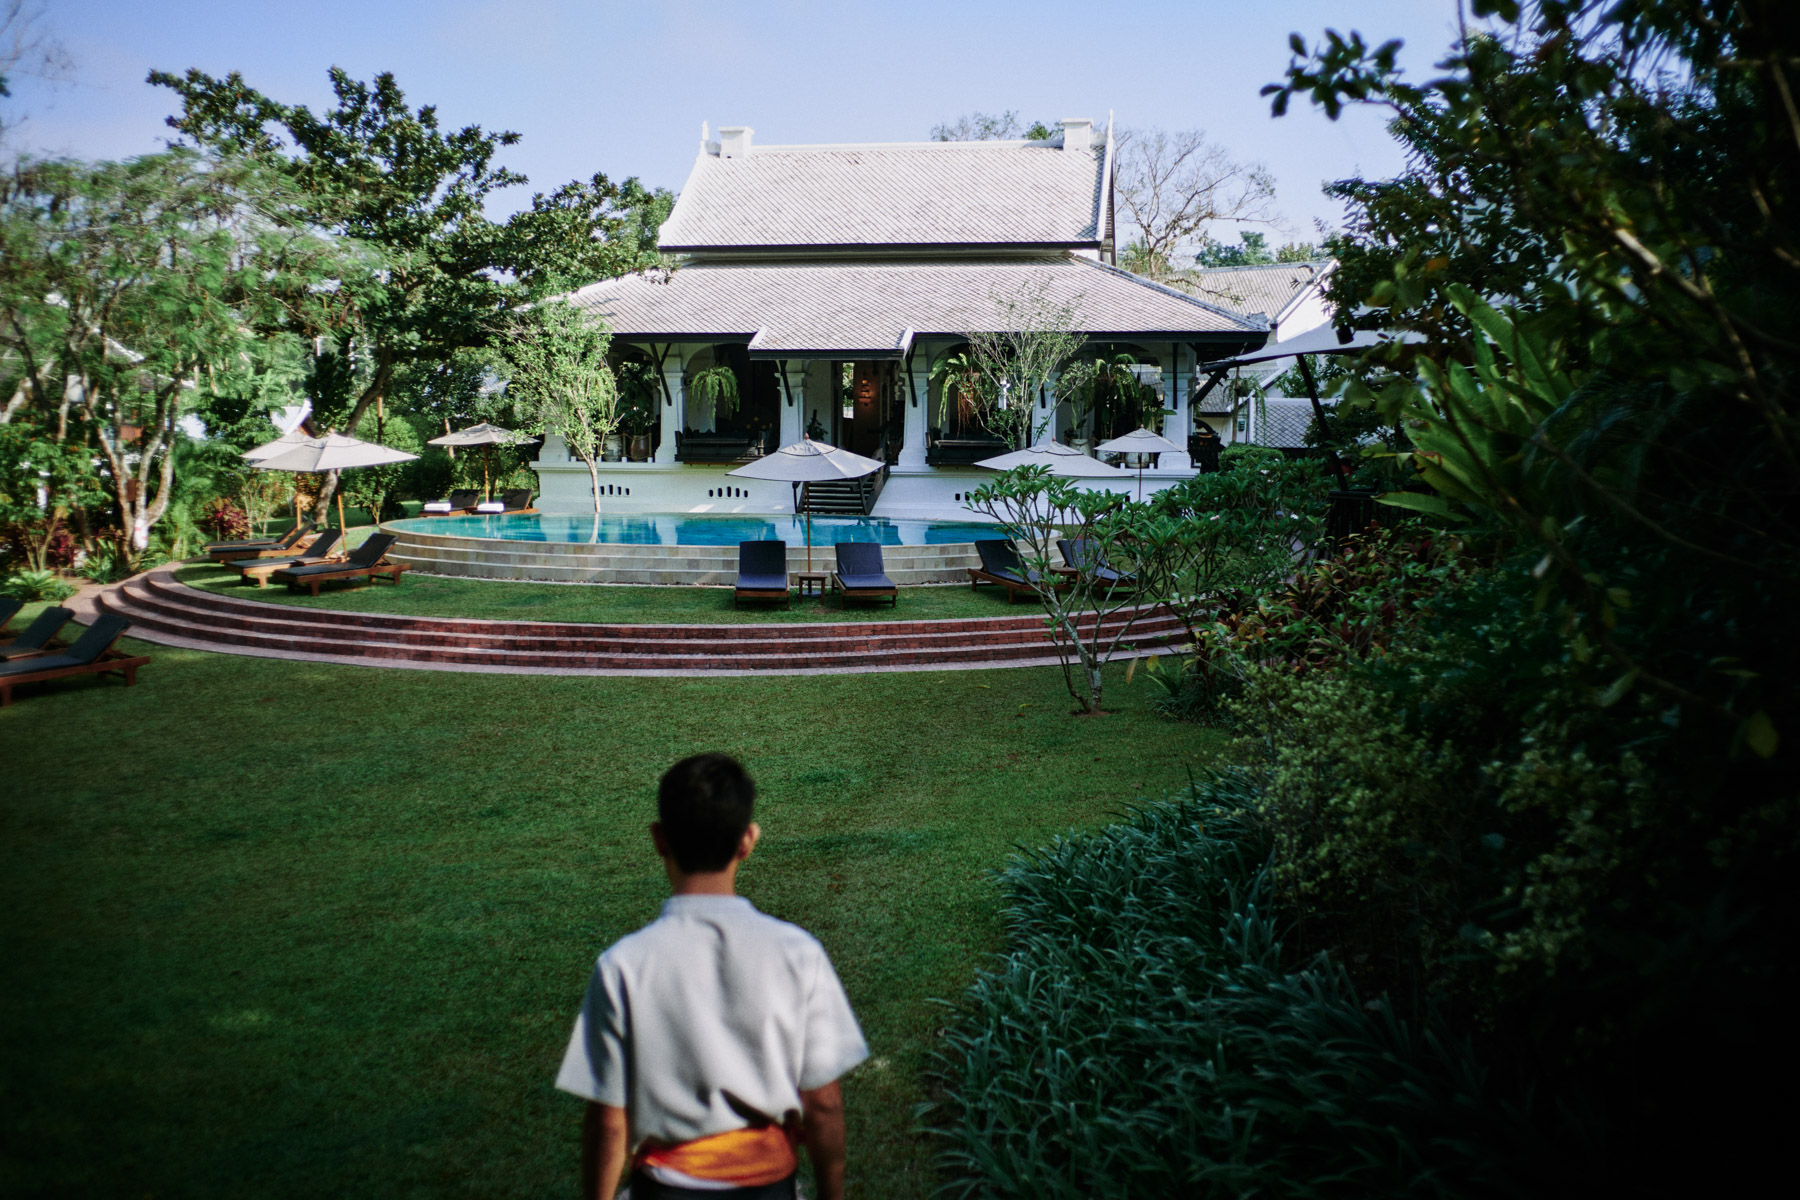 The grounds of the Rosewood Hotel in Luang Prabang, Laos.